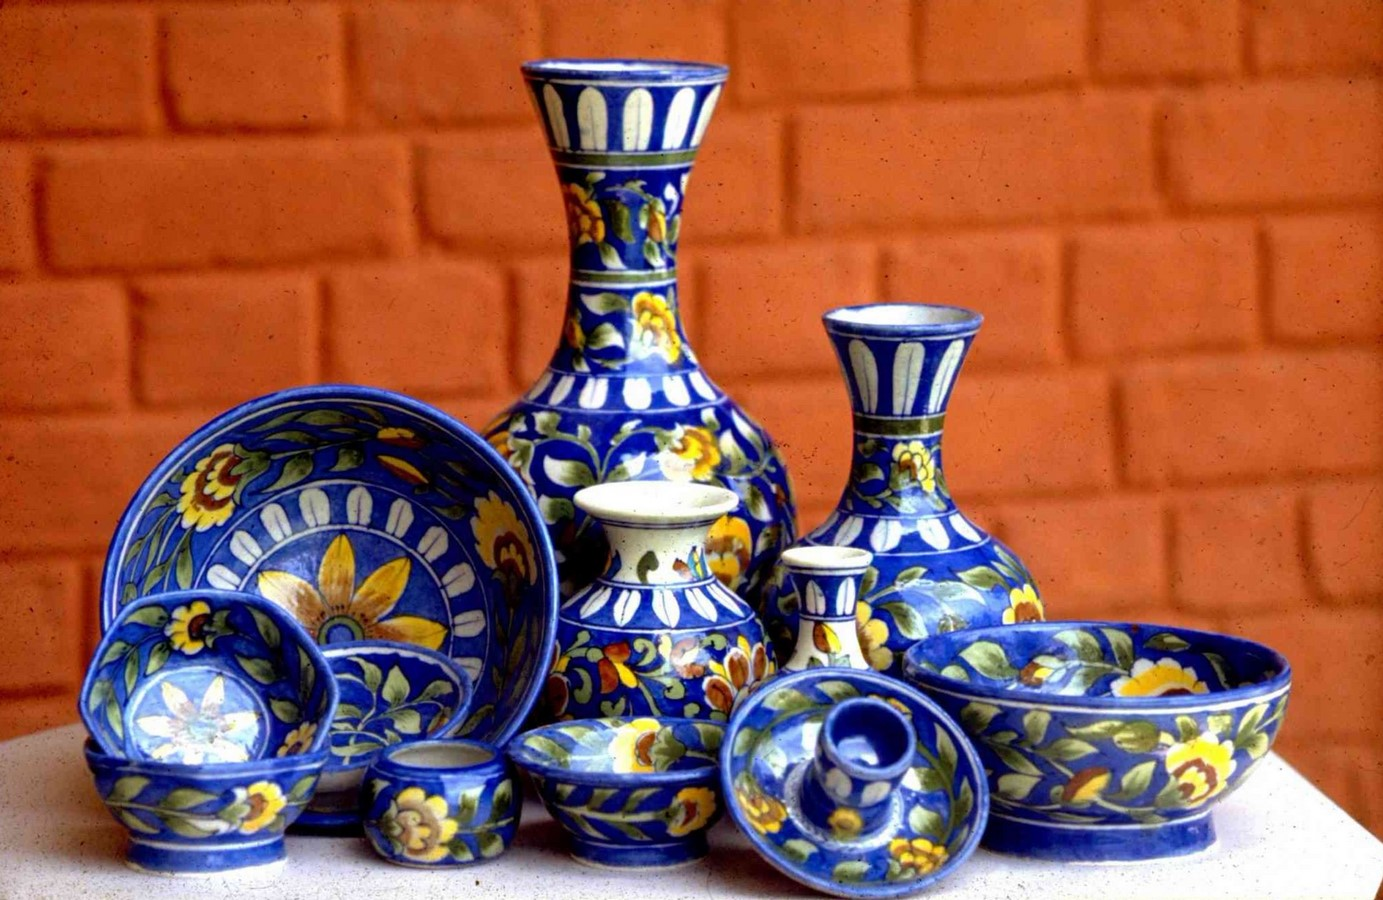 10 Unknown Handicrafts of Rajasthan -BLUE POTTERY - Sheet1